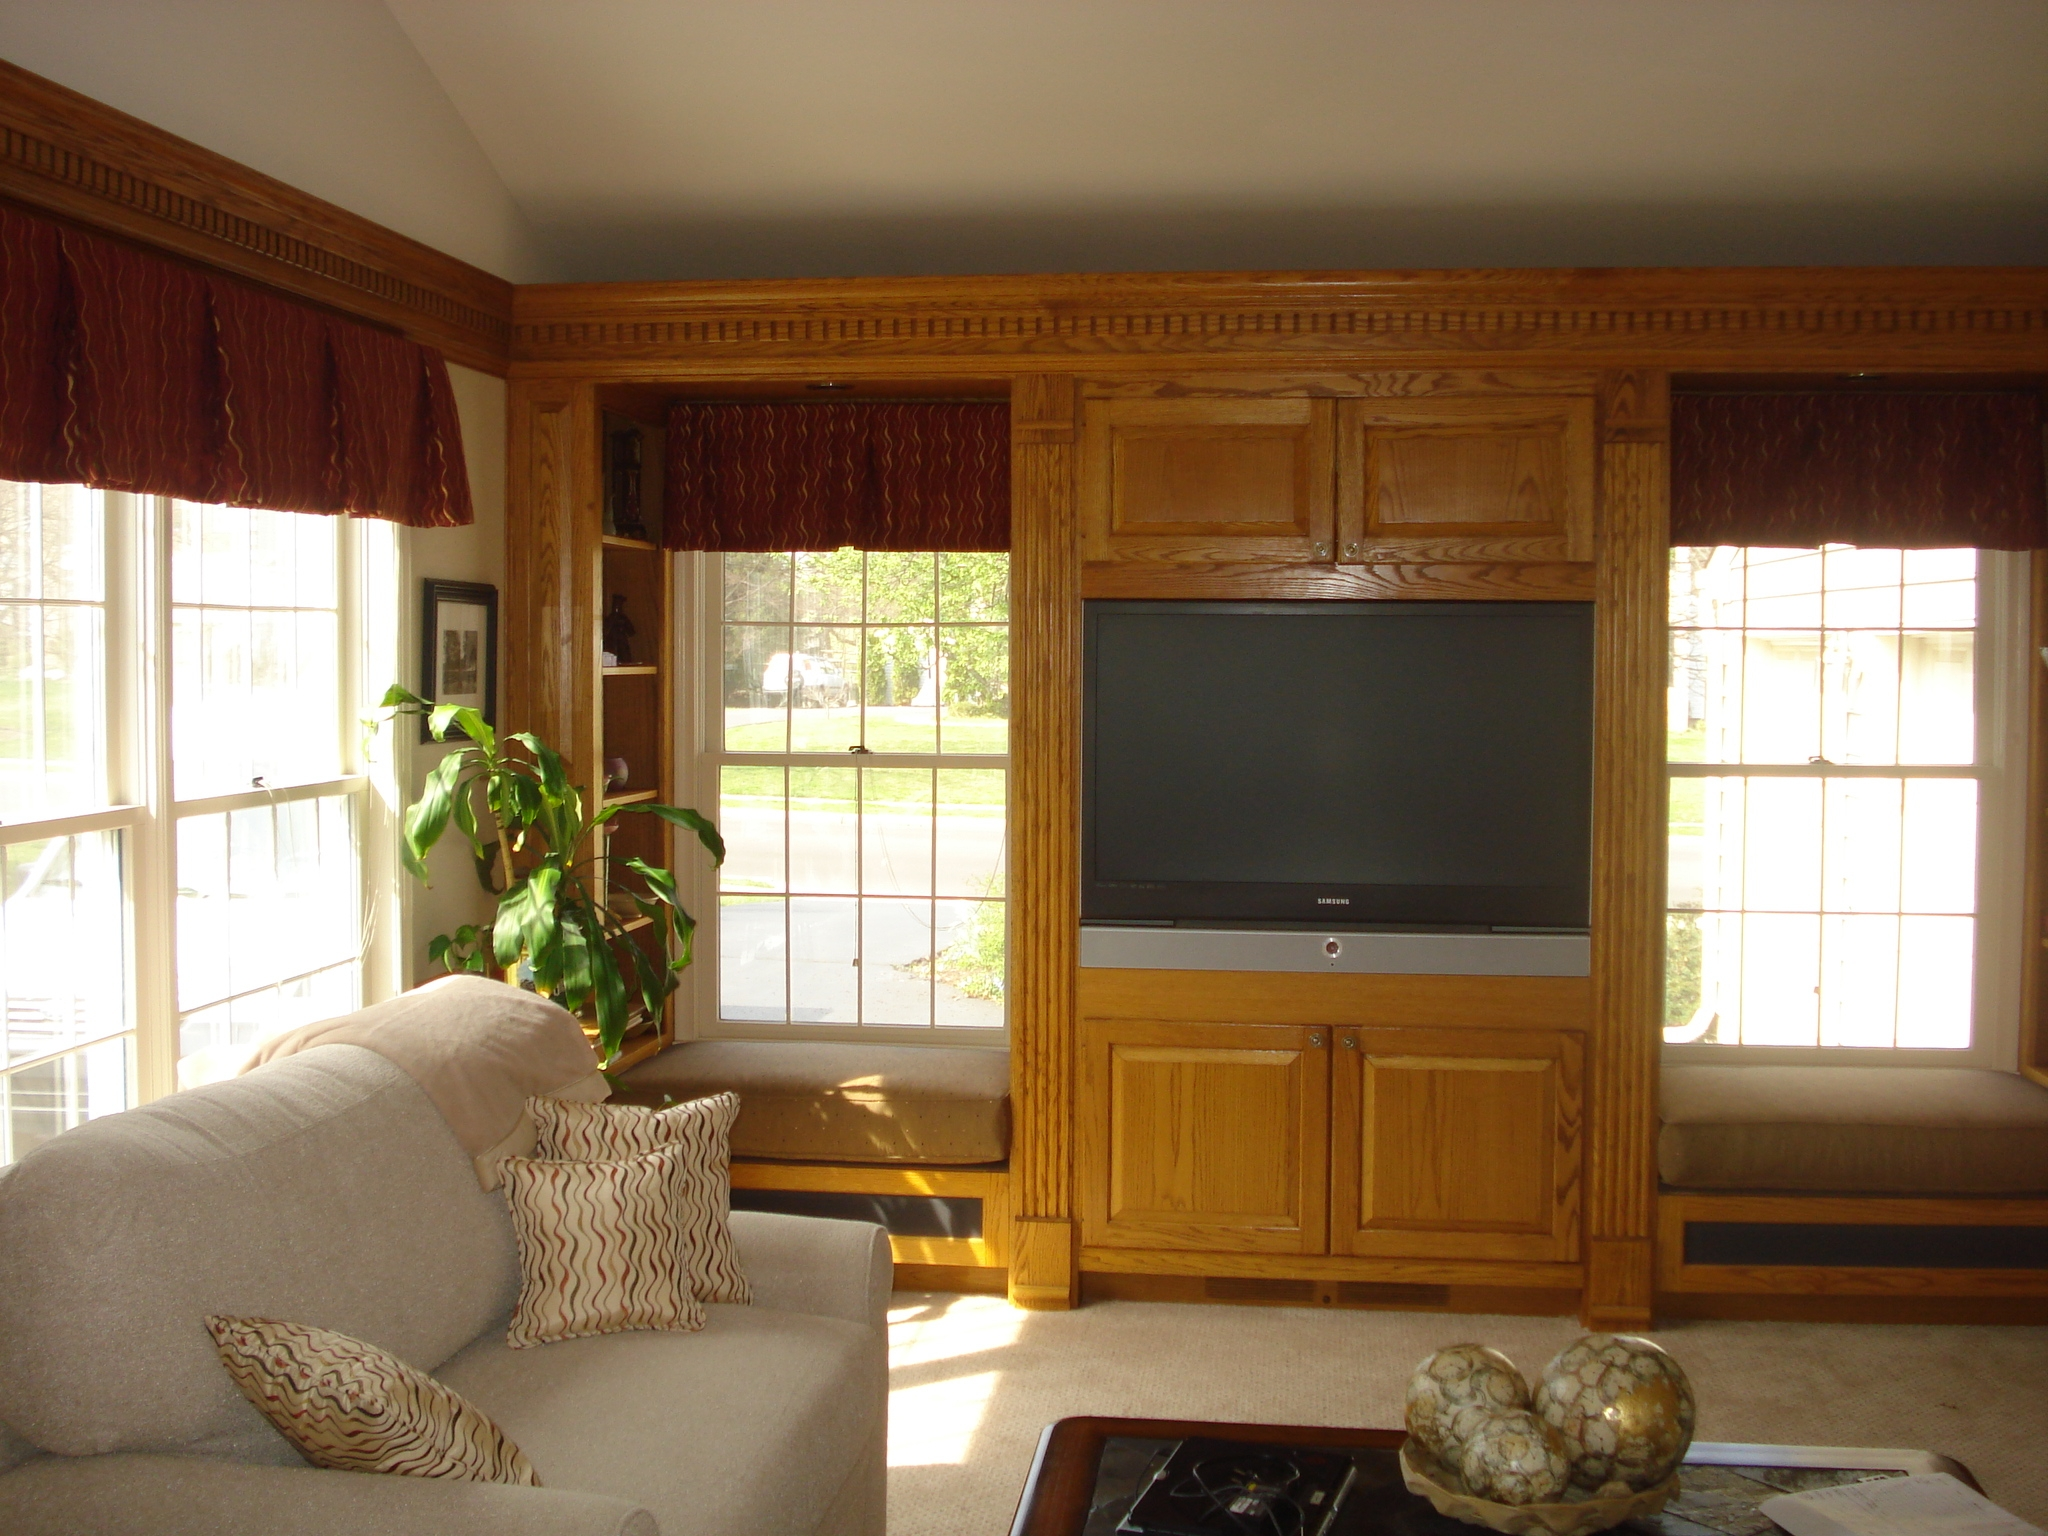 abington pa residential window treatments